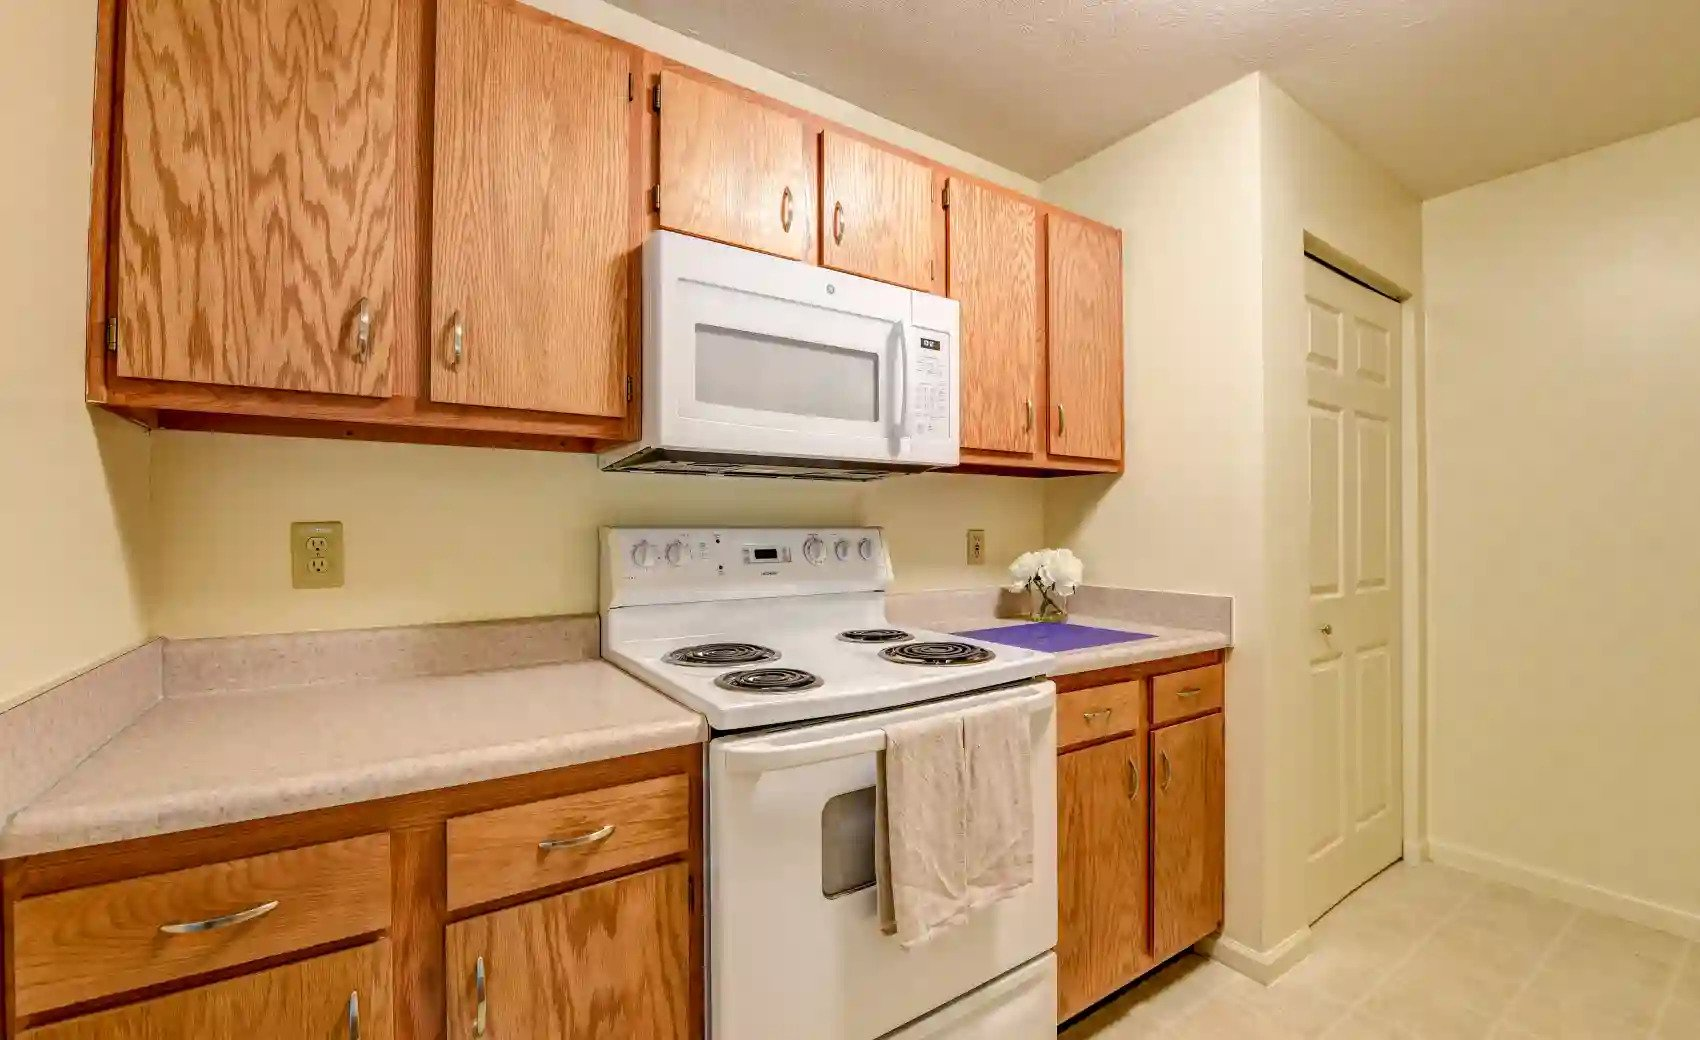 Wooden Cabinetry at Arbors of Lebanon Apartments in Lebanon, Ohio